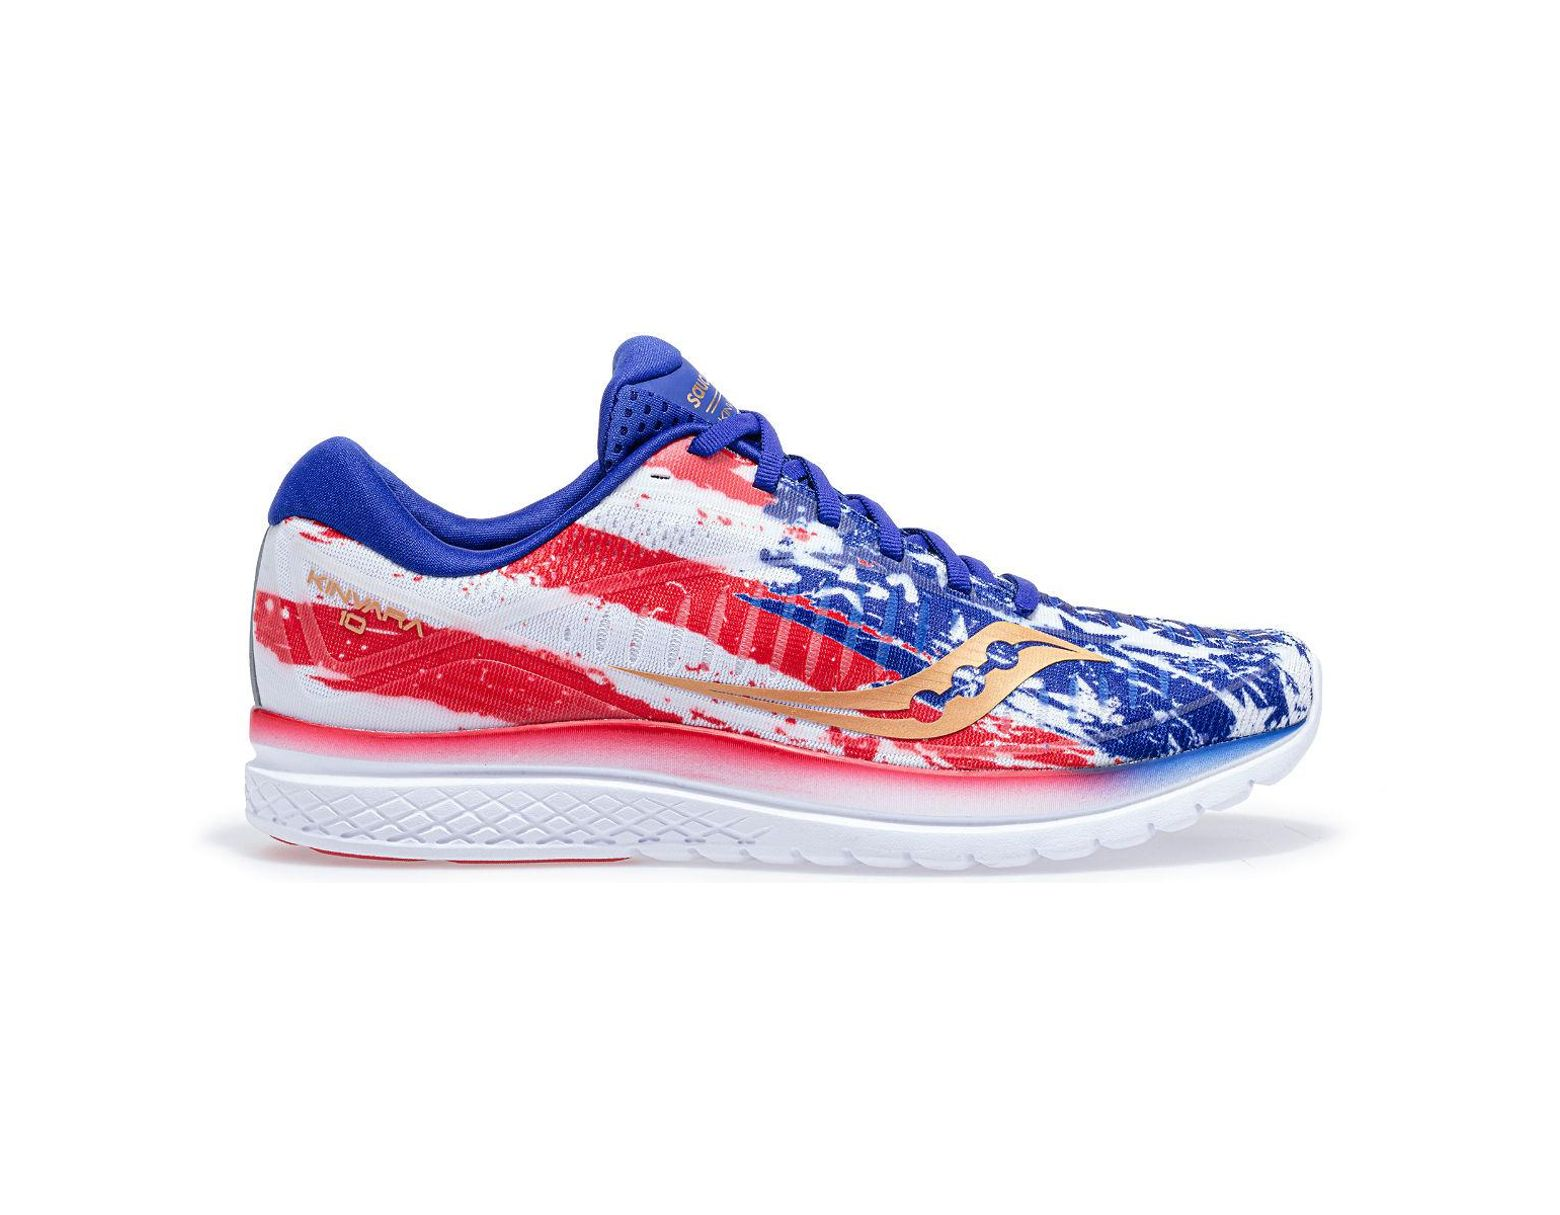 7cfe53d4 Saucony Old Glory Kinvara 10 in Blue - Lyst